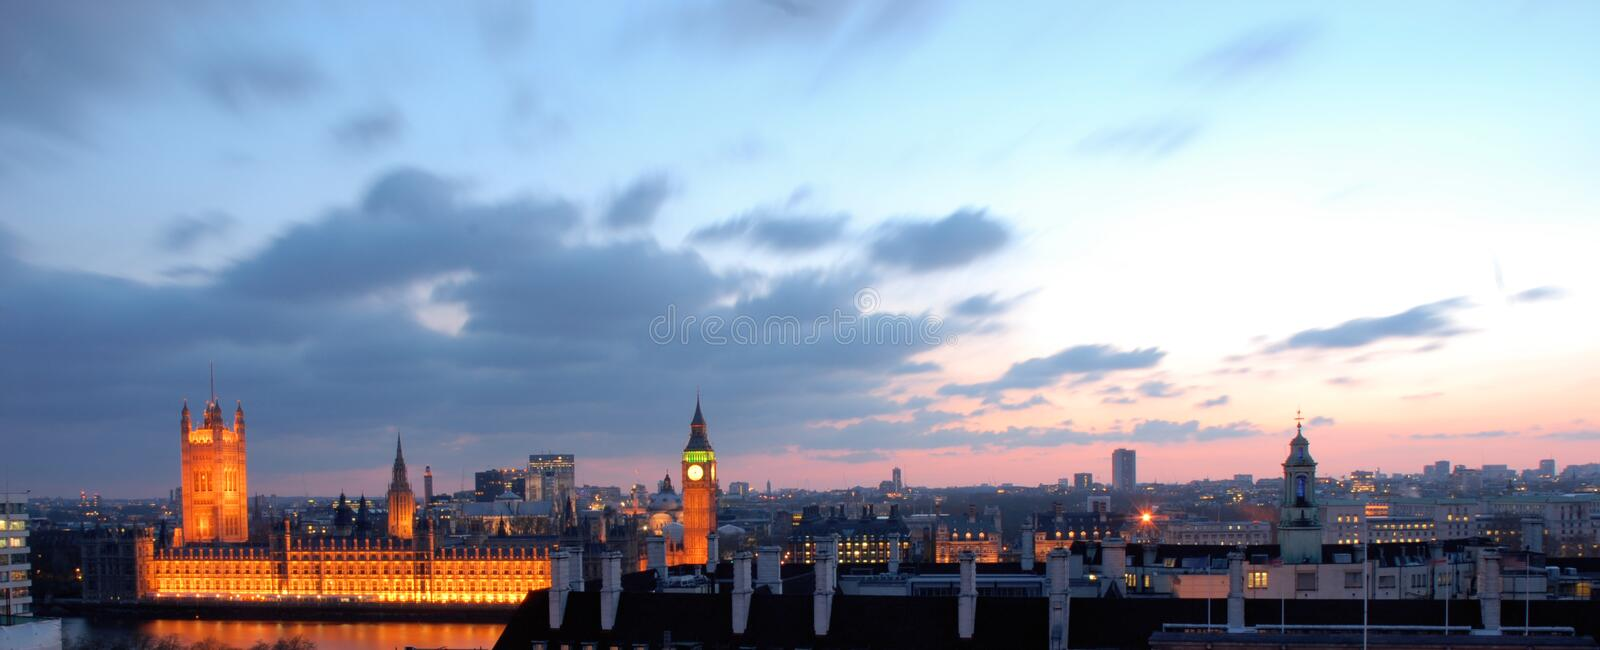 London skyline at dusk royalty free stock photo